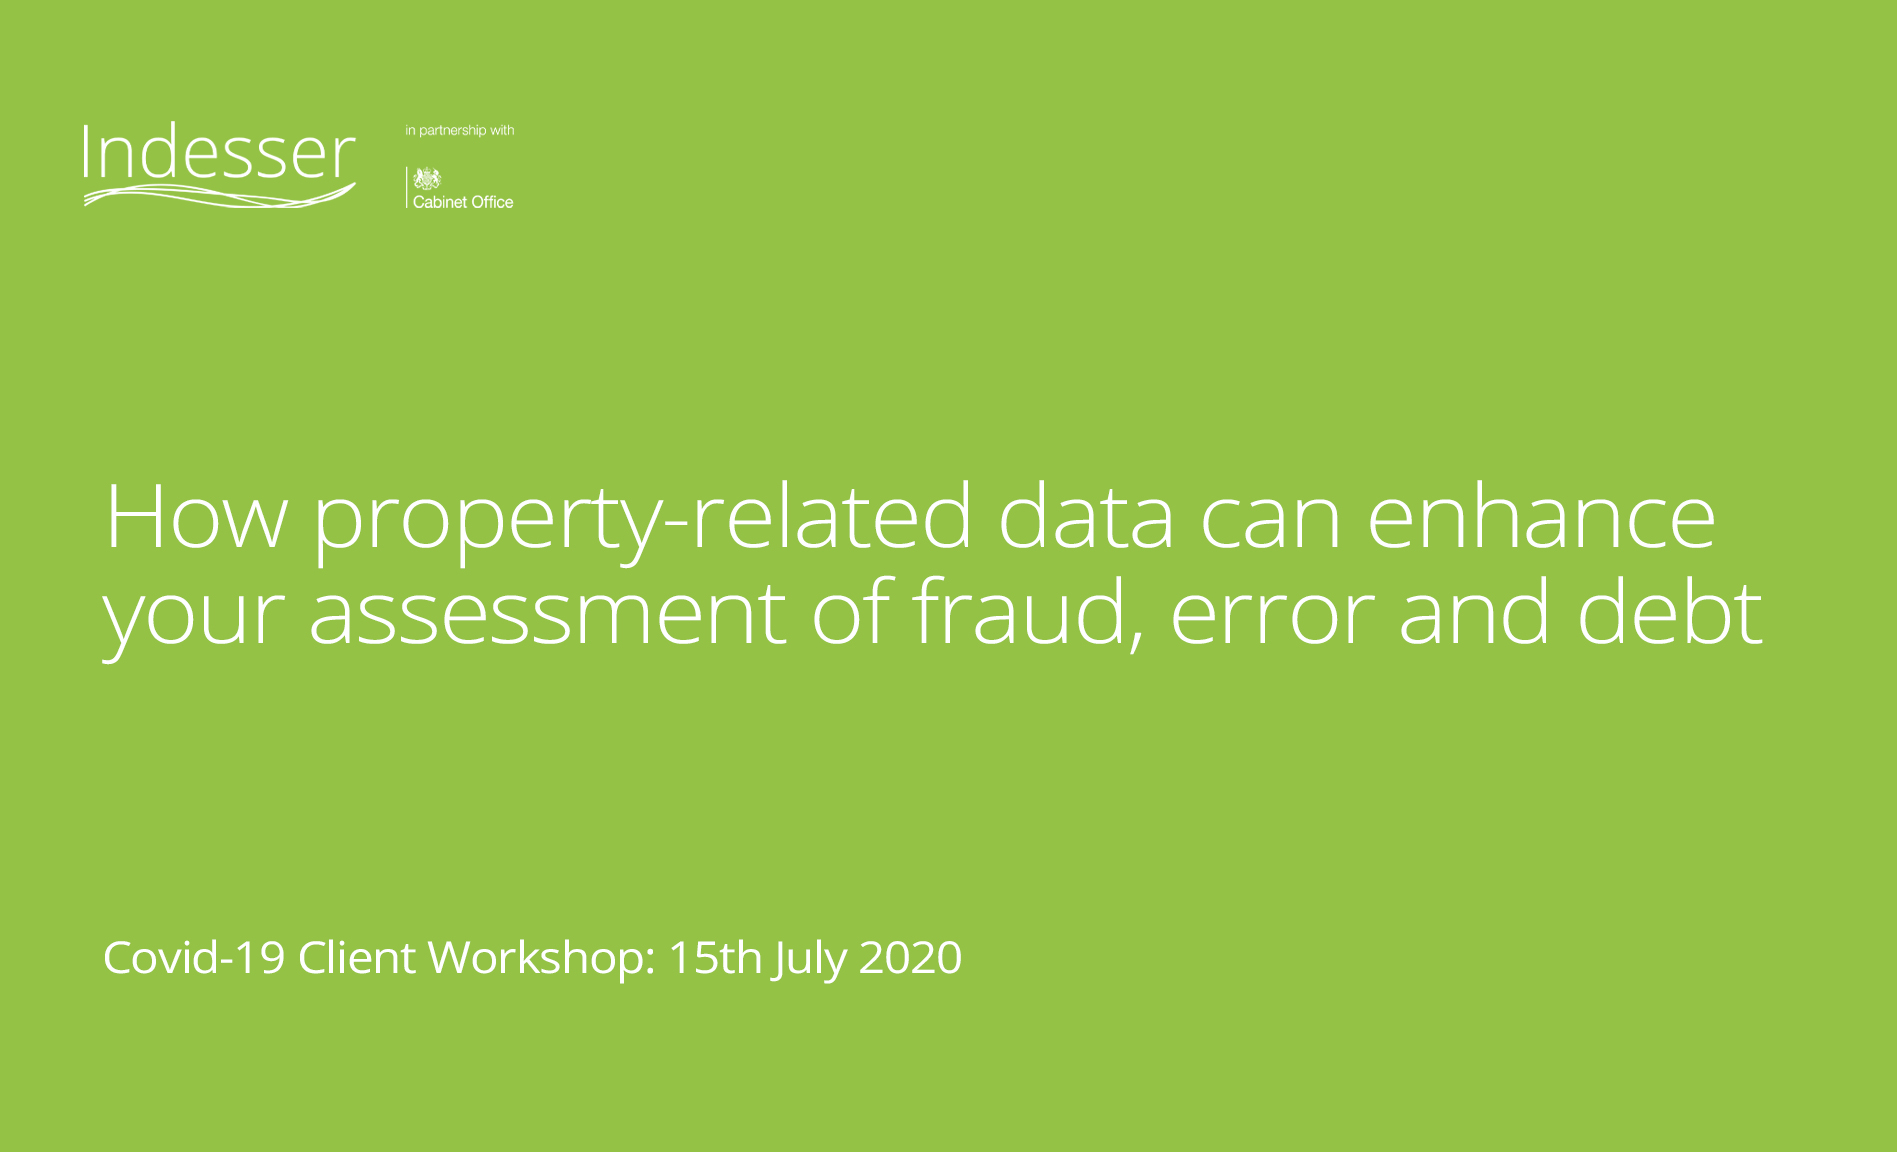 Using property-related data to enhance fraud, error and debt